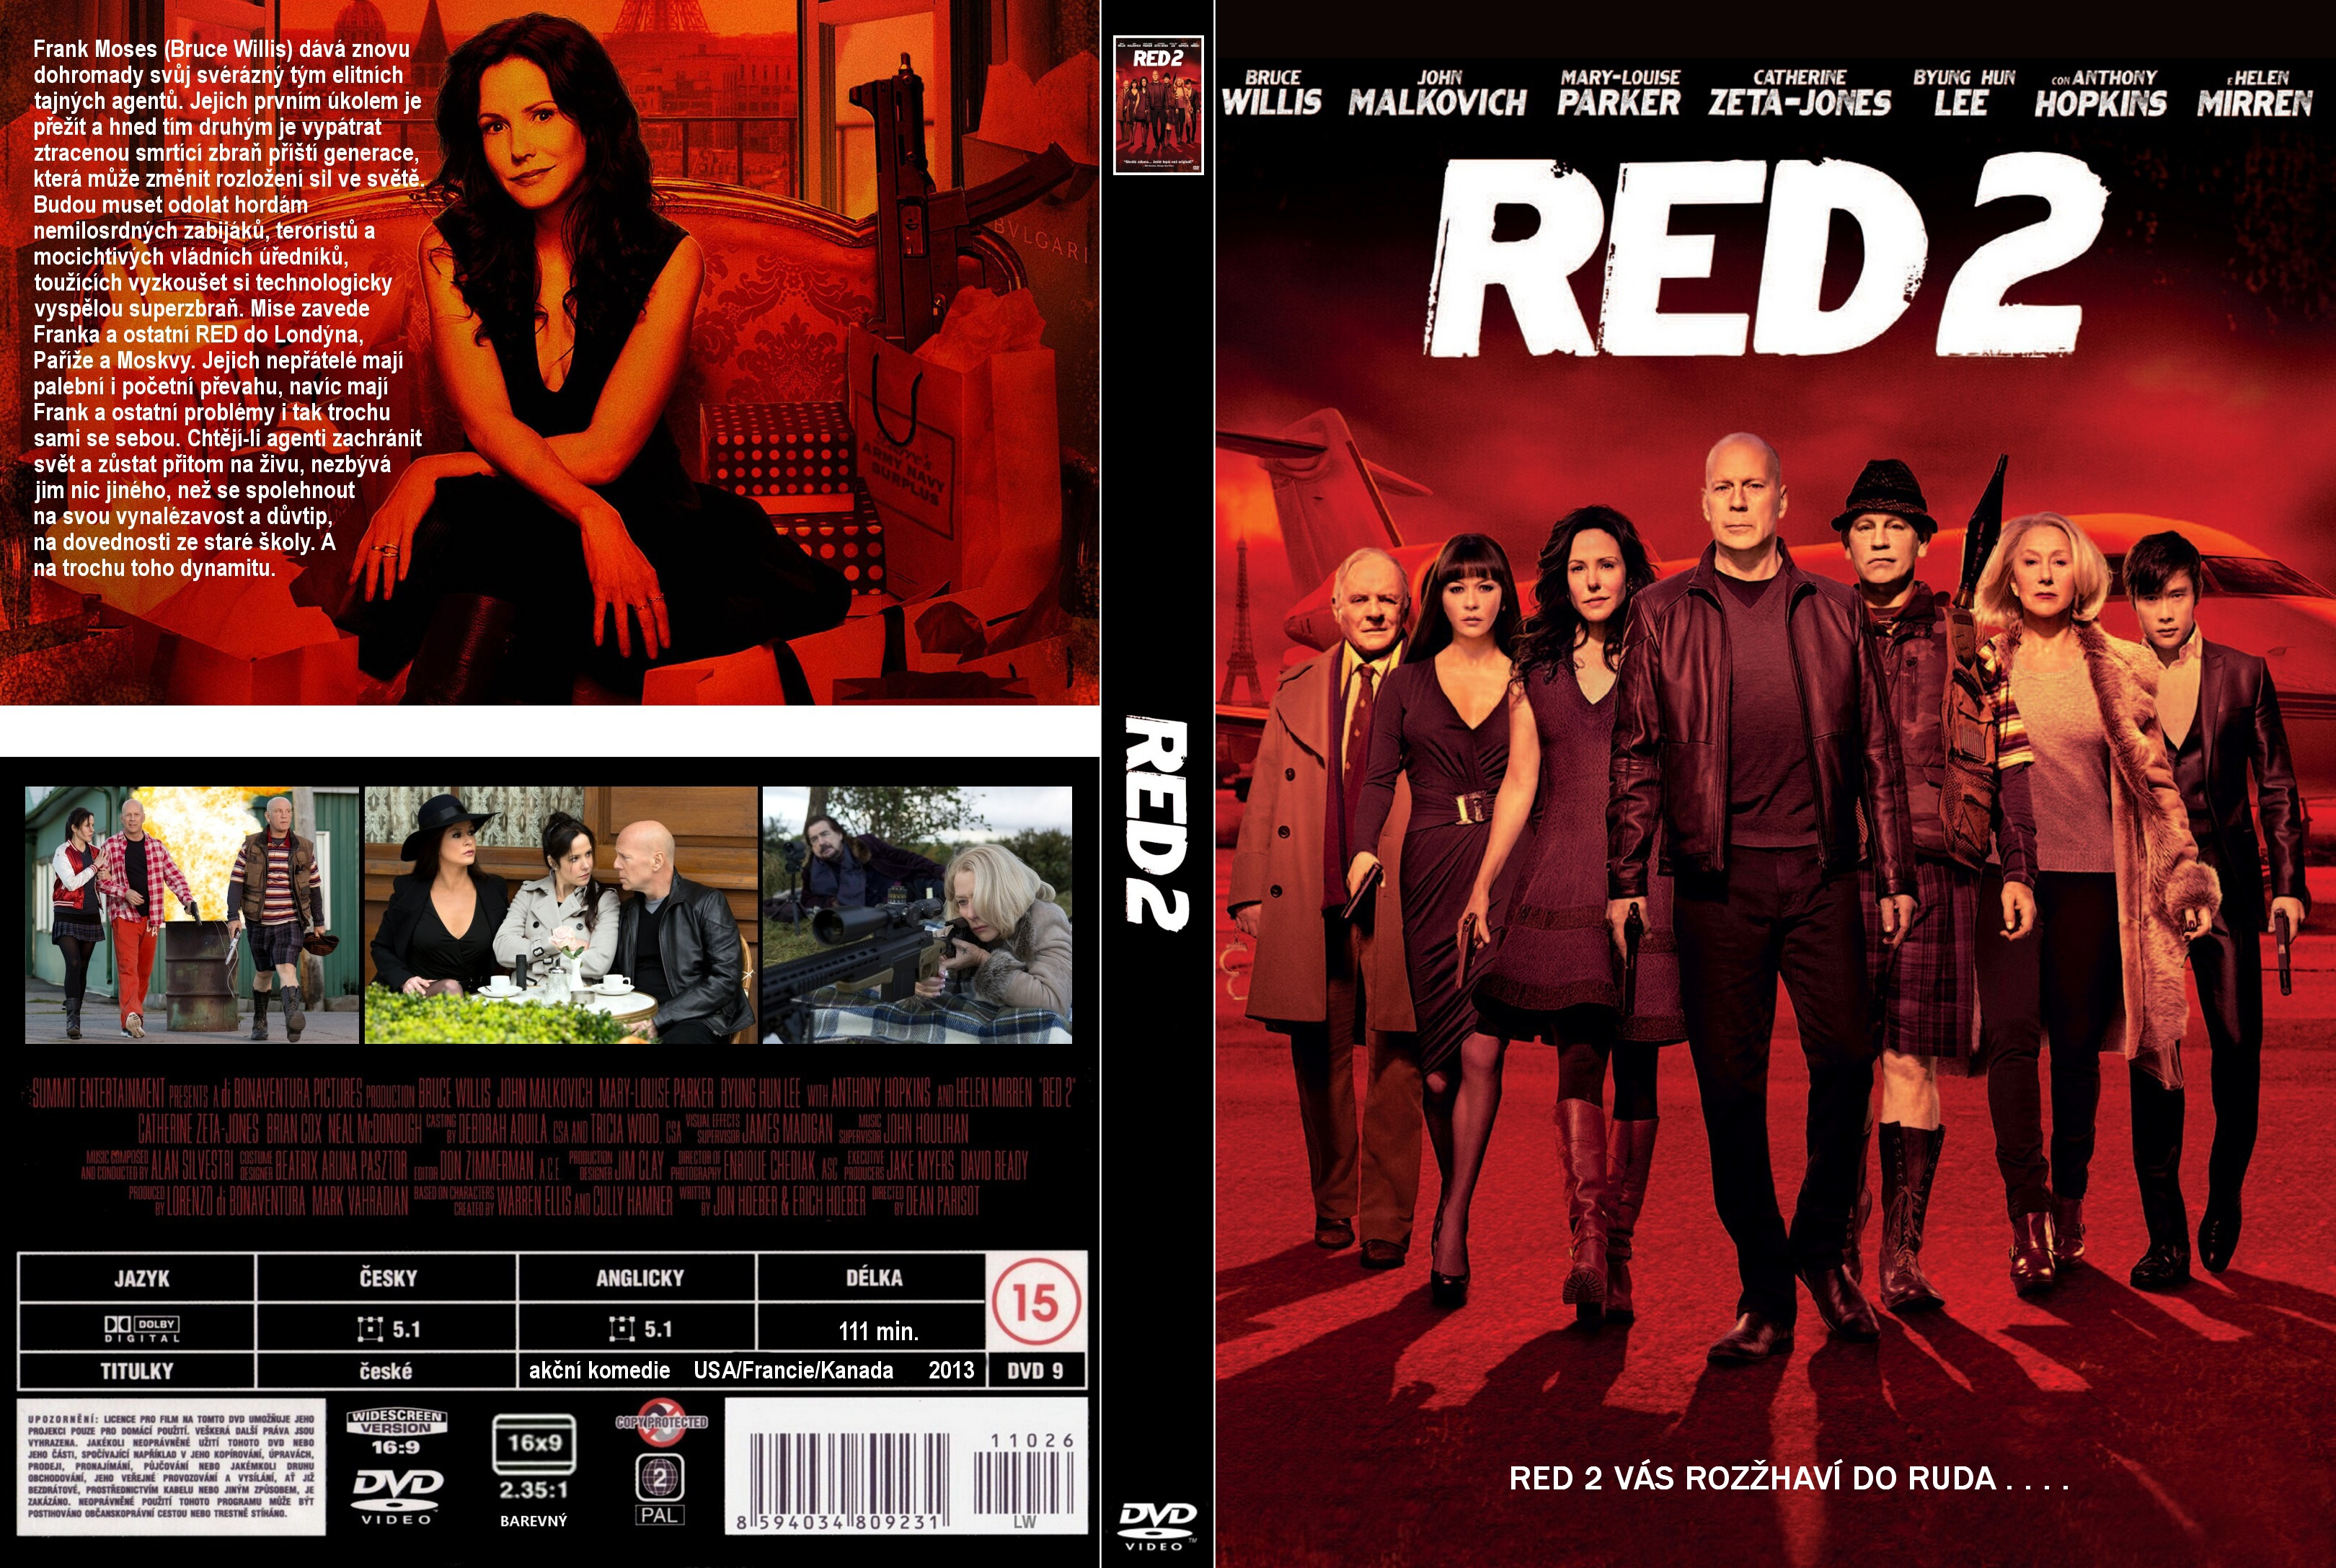 covers box sk red 2 2013 high quality dvd blueray movie